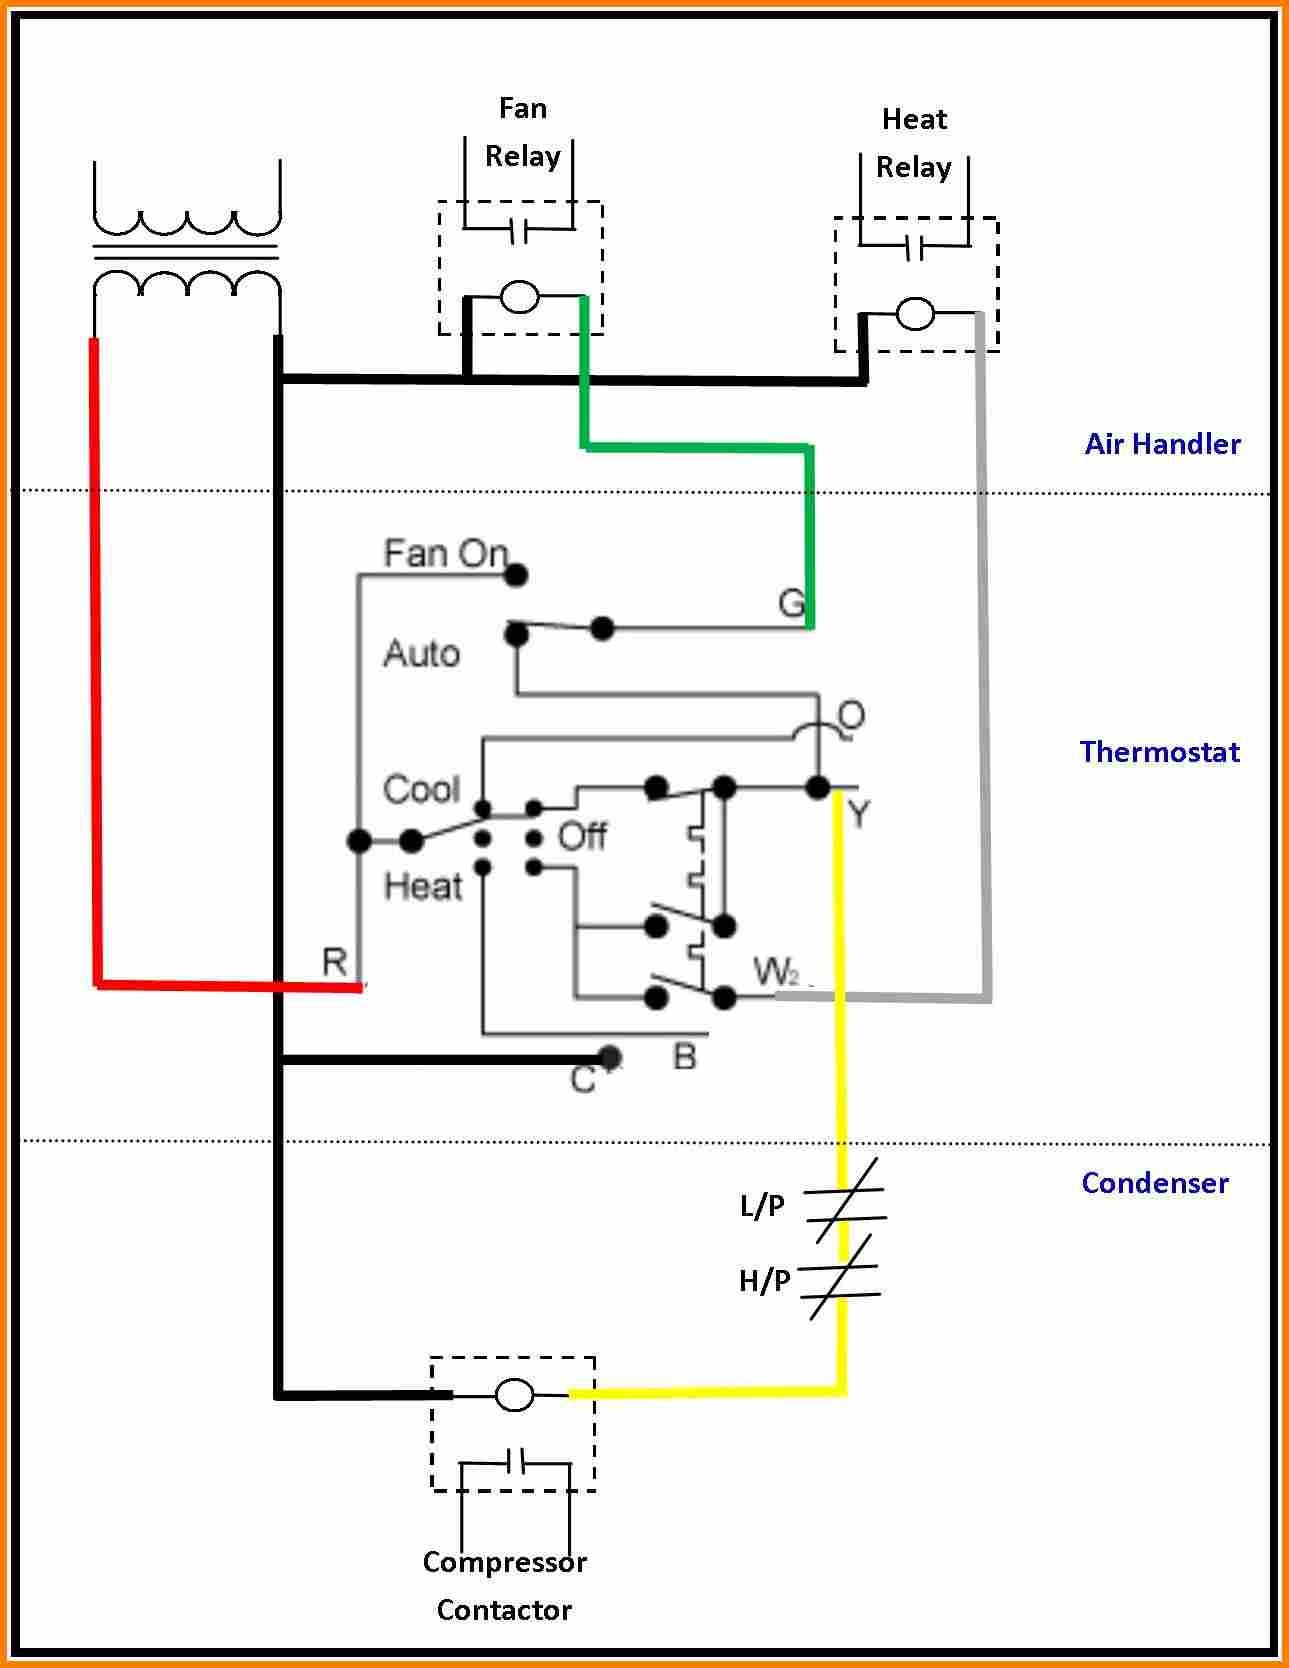 240F5FD Wiring Diagram Armstrong | Wiring Resources on 91 jeep cherokee starter, 92 toyota tercel starter, 92 ford aerostar starter, 92 oldsmobile 88 starter, 1992 jeep cherokee starter, 92 lincoln town car starter,